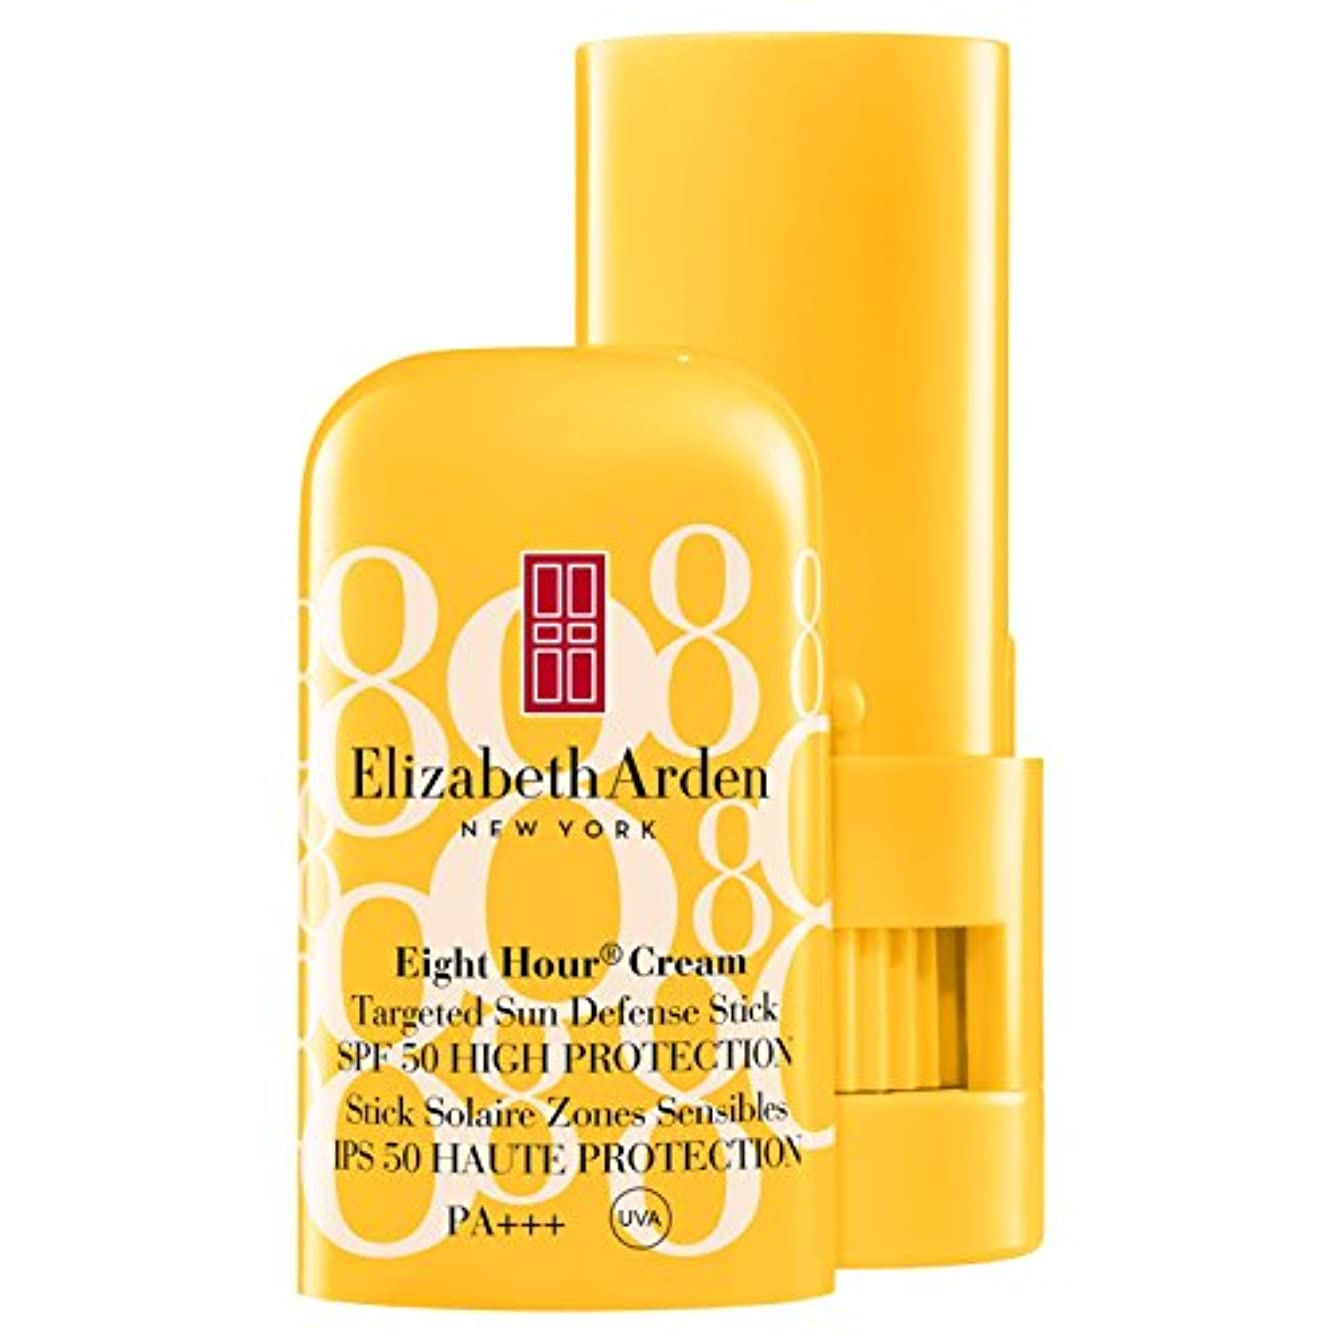 ベアリング仲間スライスElizabeth Arden Eight Hour? Cream Targeted Sun Defense Stick SPF50 High Protection 15ml (Pack of 6) - エリザベスアーデン...